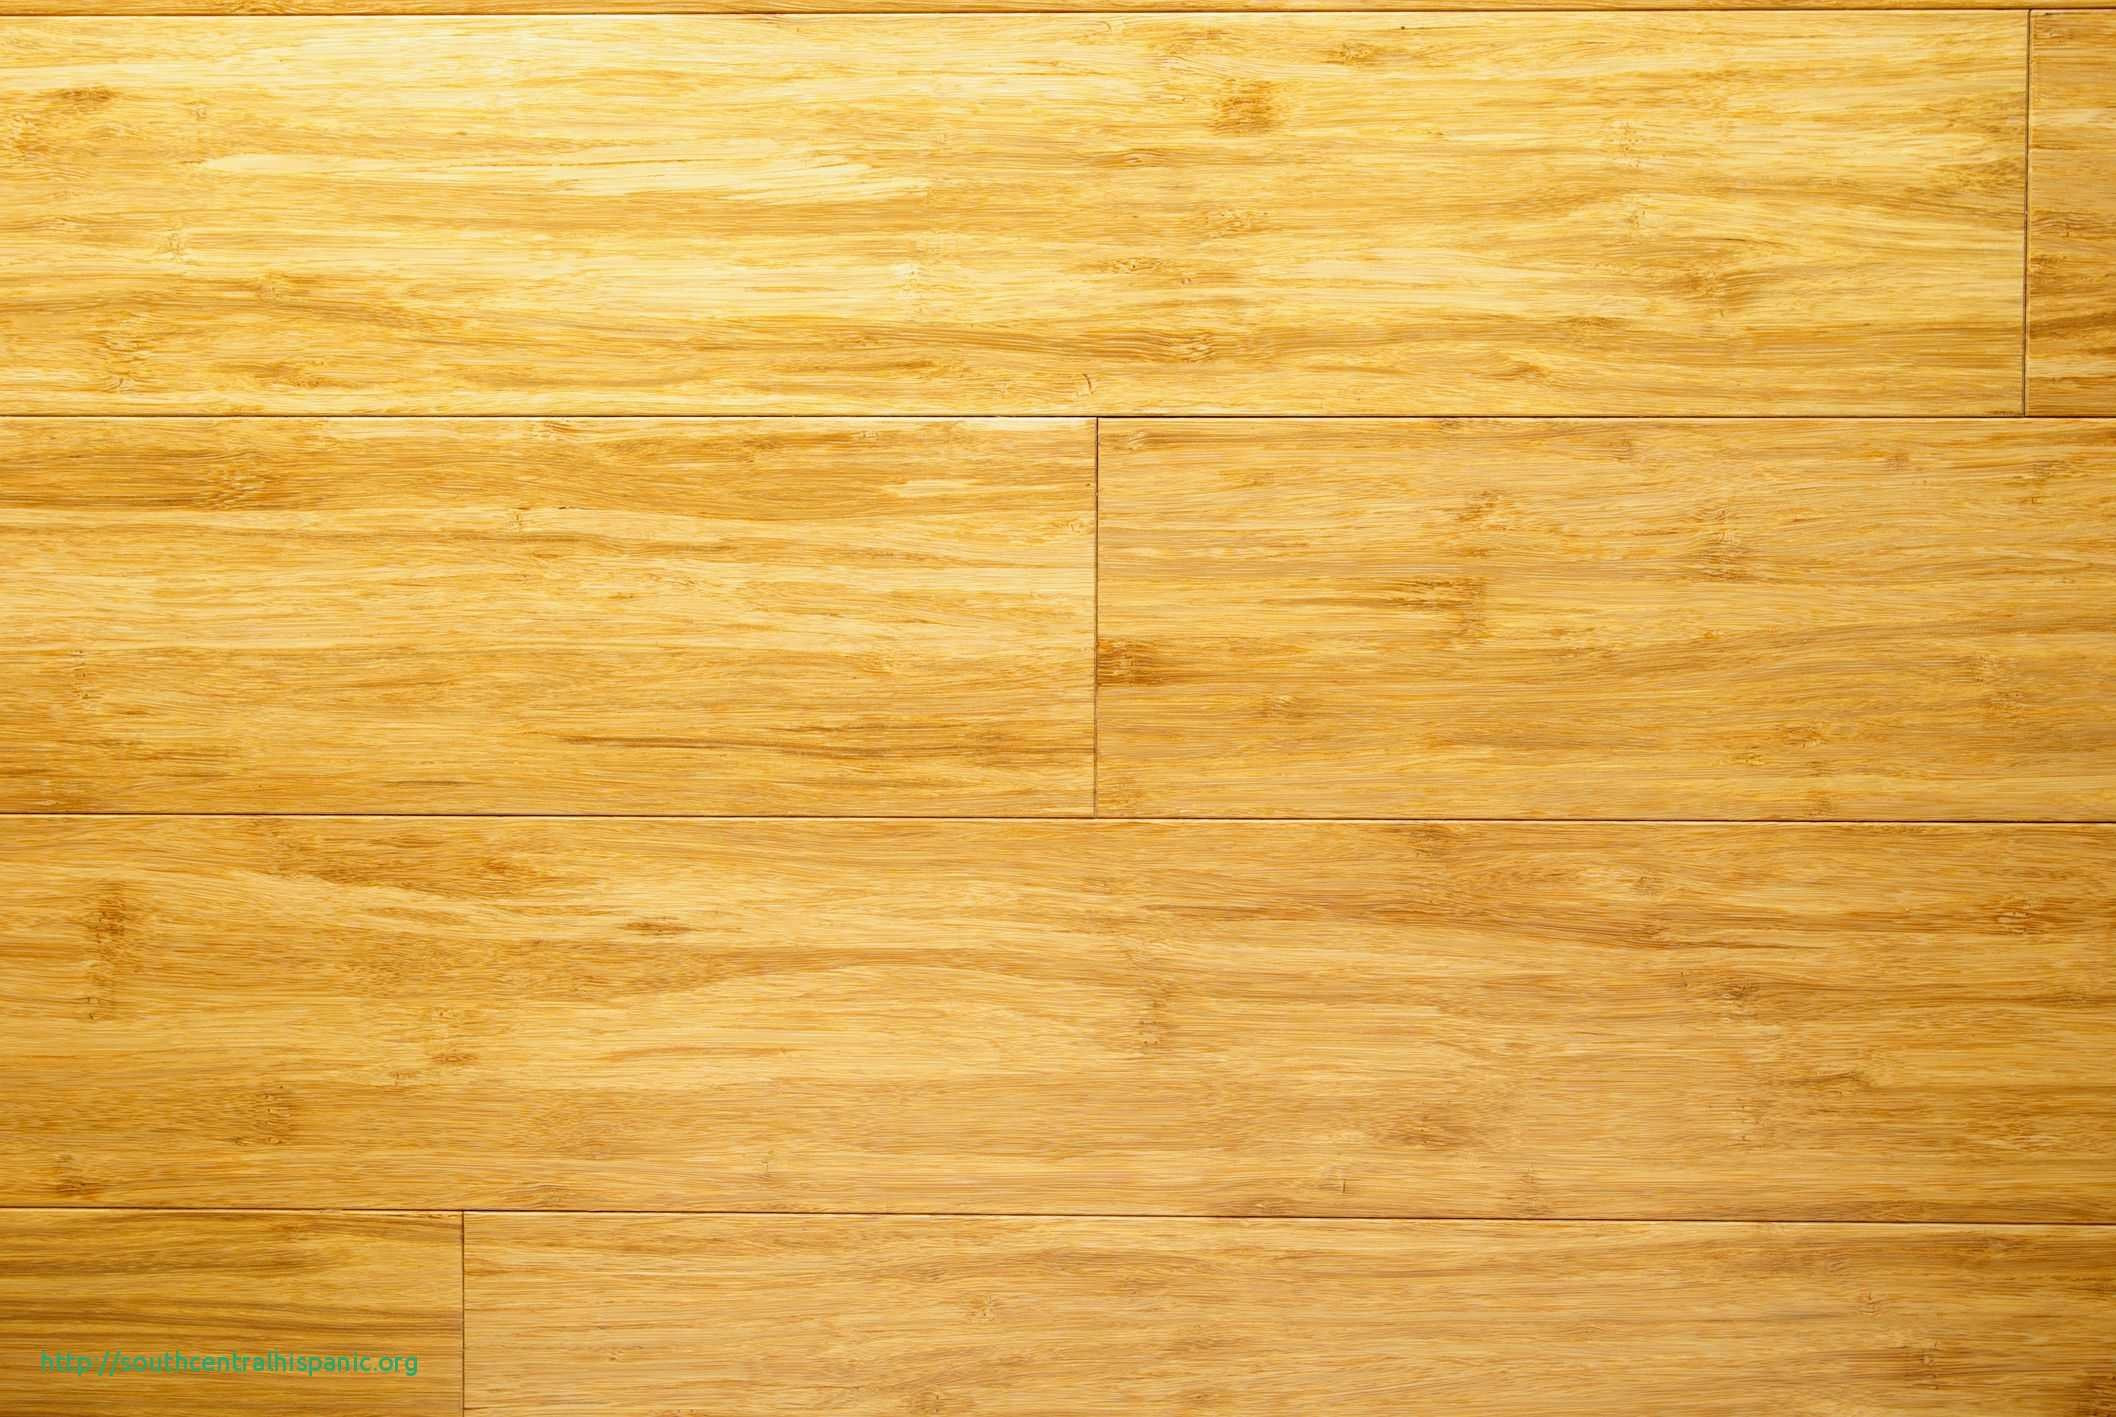 3 4 bamboo hardwood flooring of 26 fresh carbonized bamboo stock flooring design ideas for can bamboo floors be refinished luxe engineered strand woven bamboo